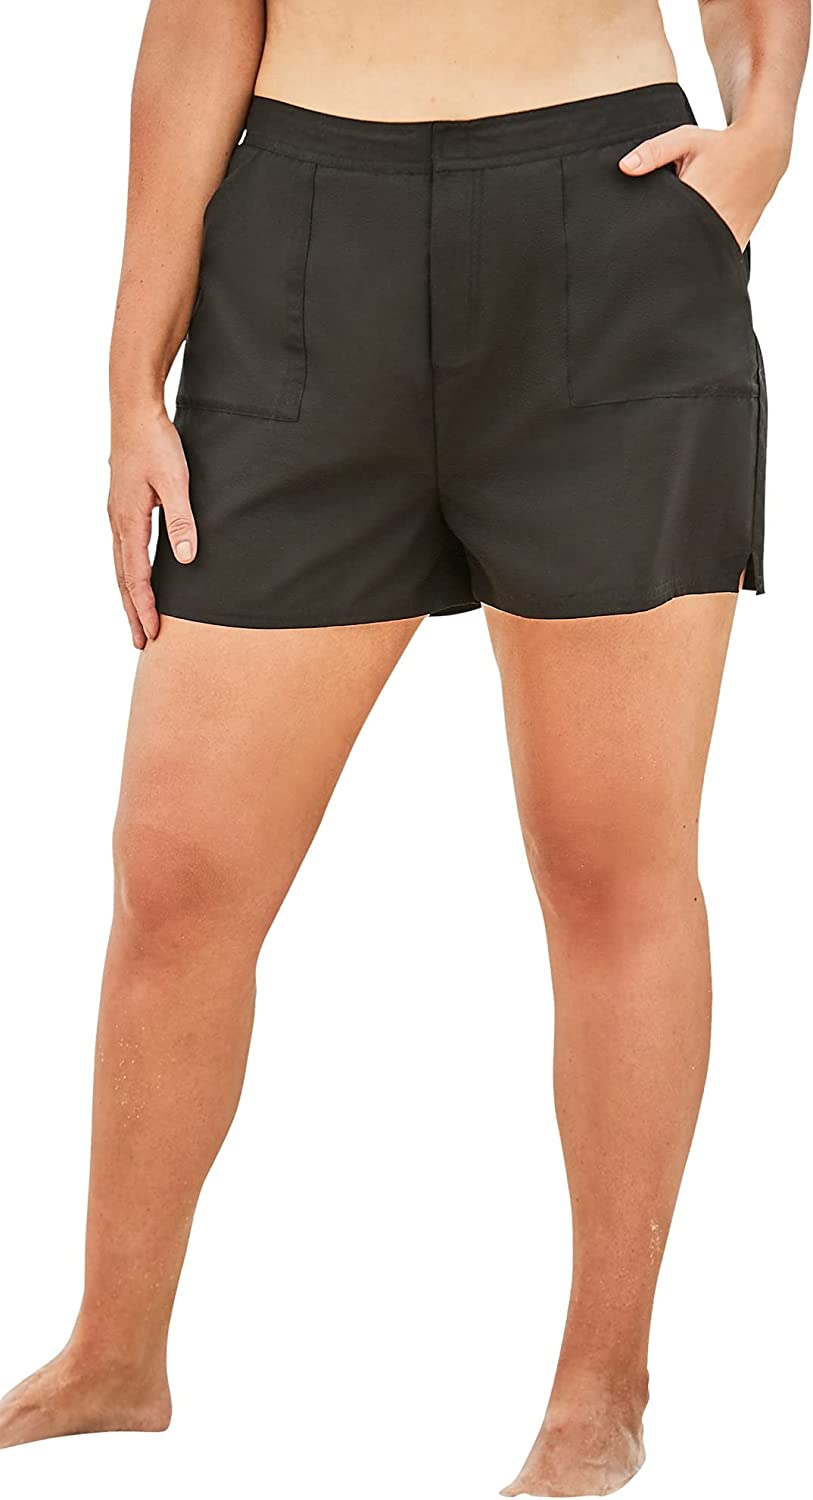 Swimsuits For All Women's Plus Size Cargo Swim Shorts with Side Slits Swimsuit Bottoms